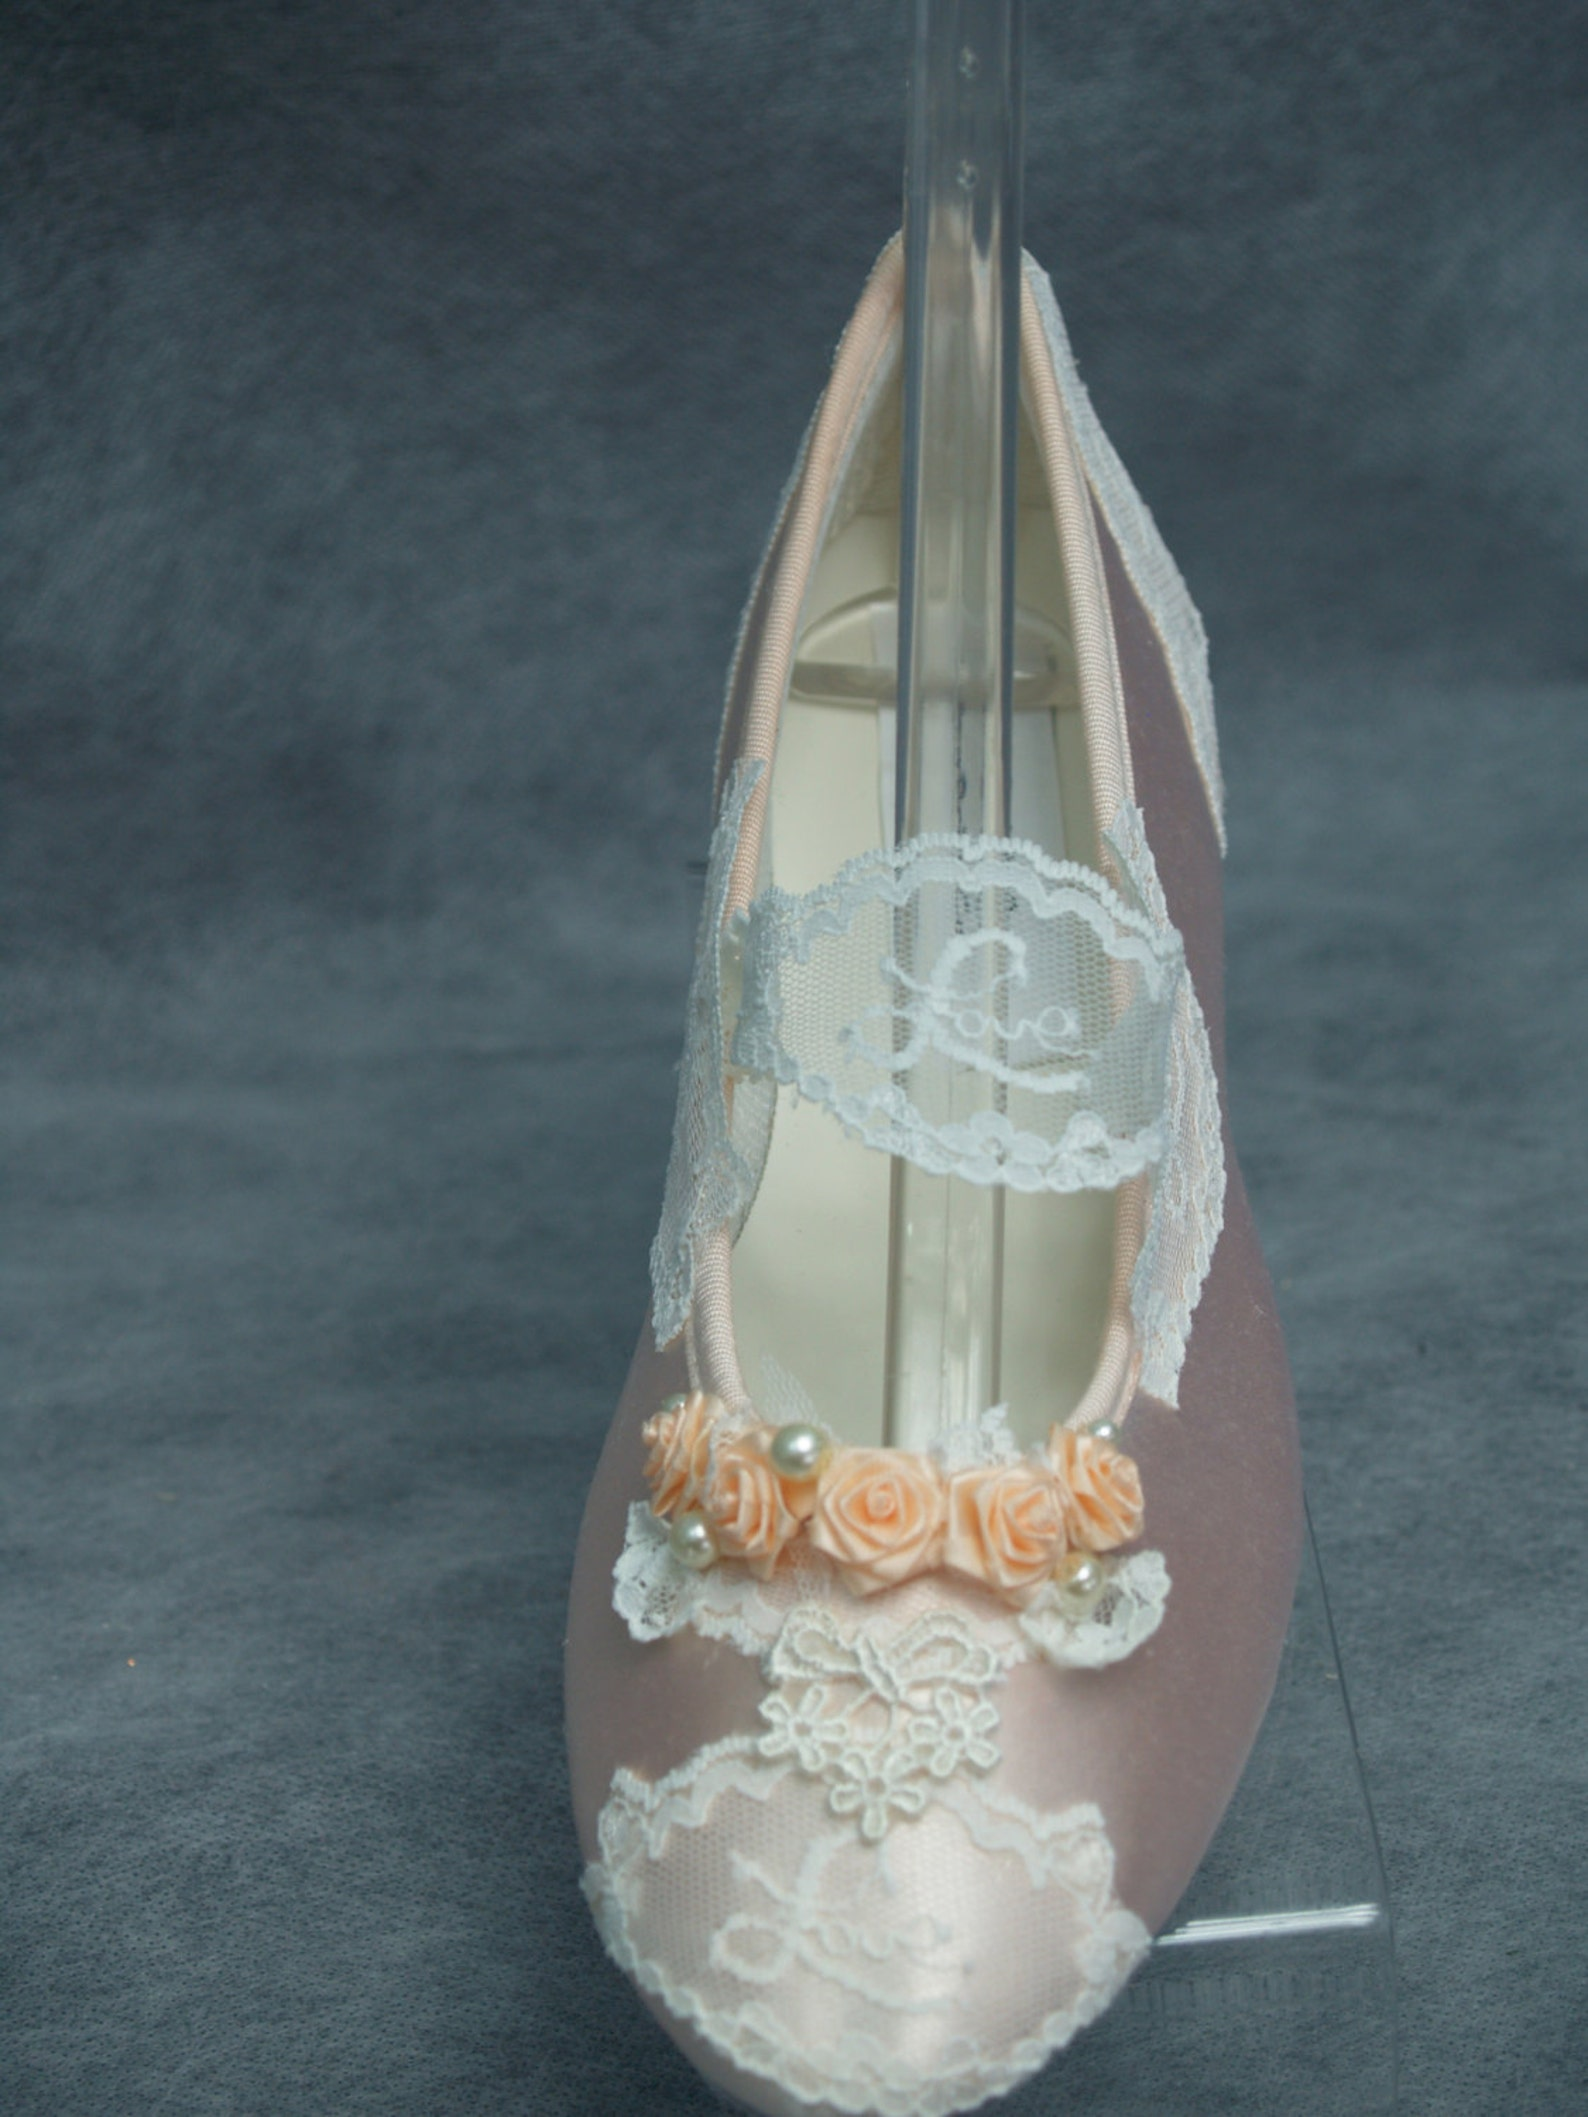 peach flats 6 1/2 victorian flats peach wedding shoes,ballet style slipper,love lace with peach flowers,mary jane style, flat,re